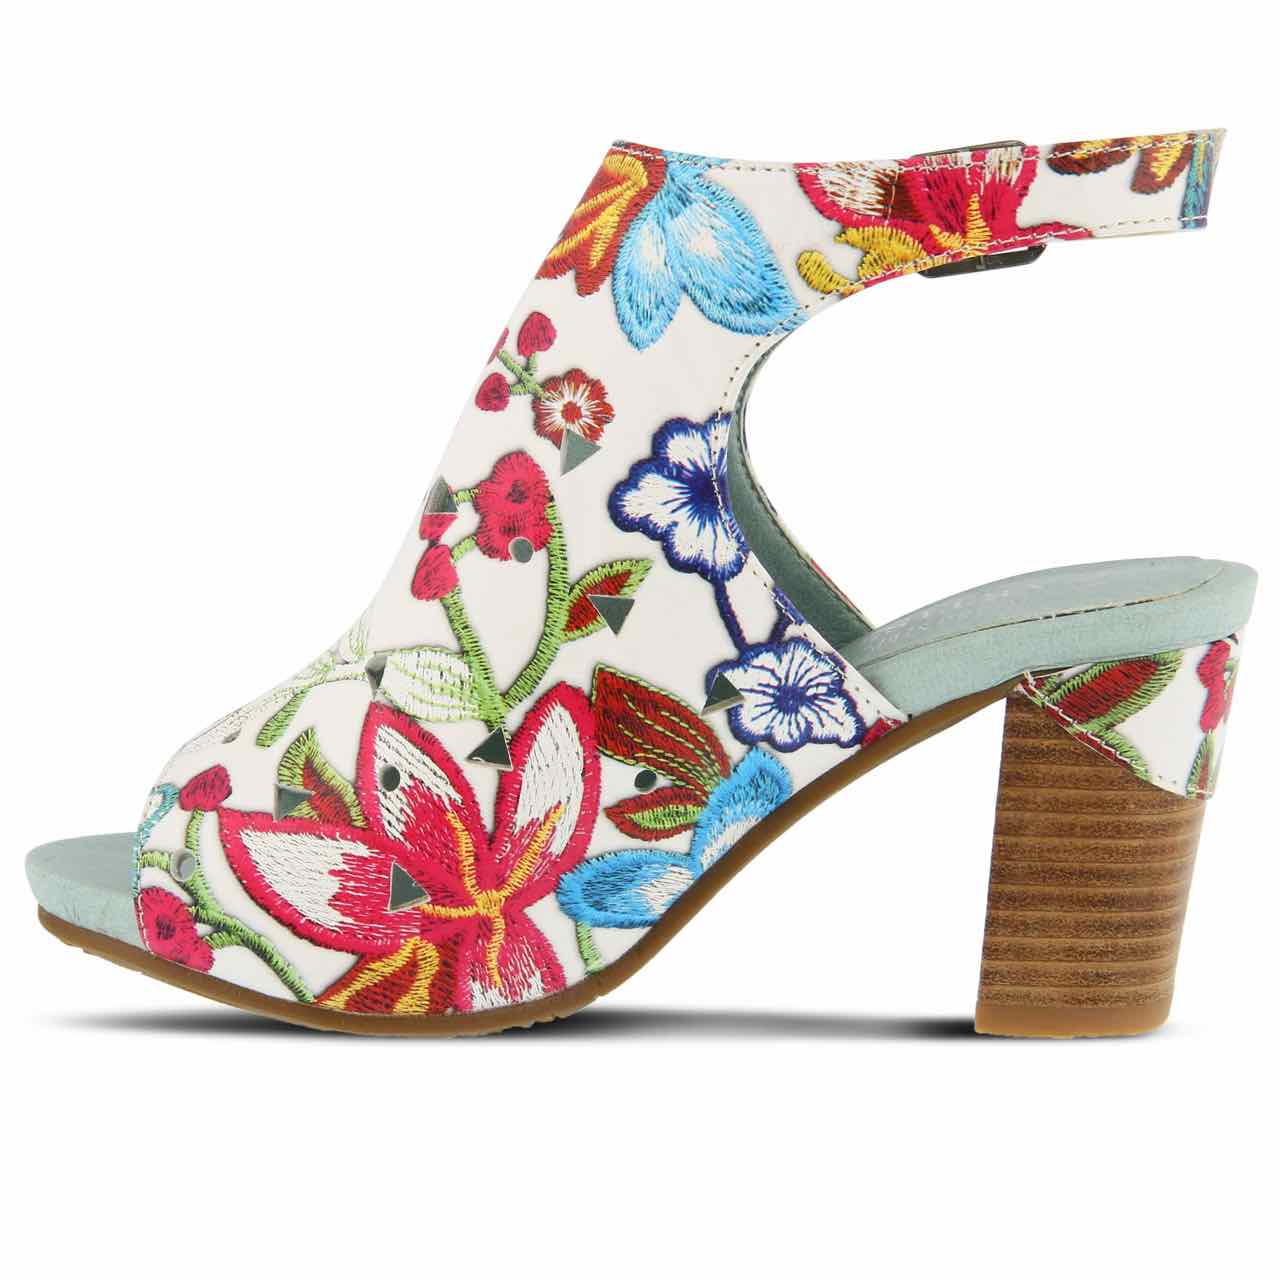 L'Artiste by Spring Step Leather Sandals - Tapestry purchase 7YdFCxpt